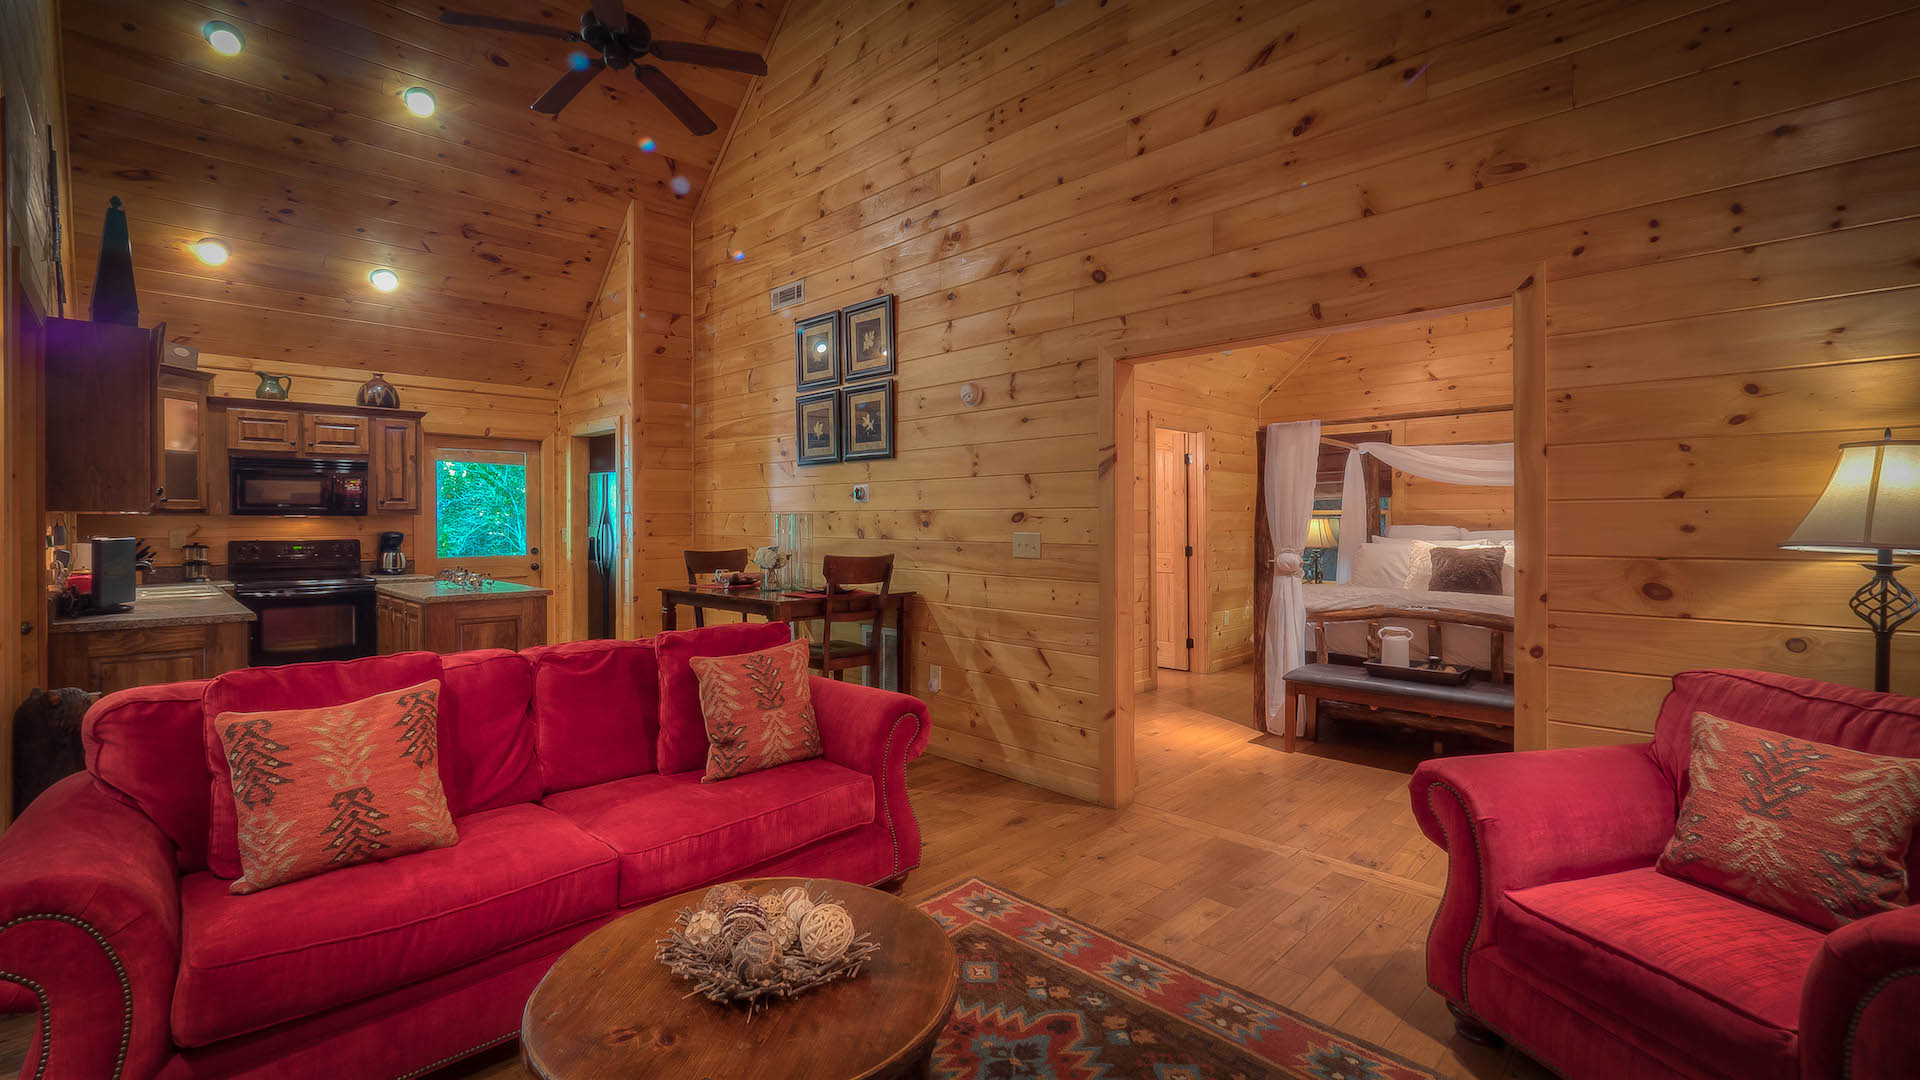 cabins olde county homeaway rentals rental stone vacation romantic cabin pa cottage lancaster in the